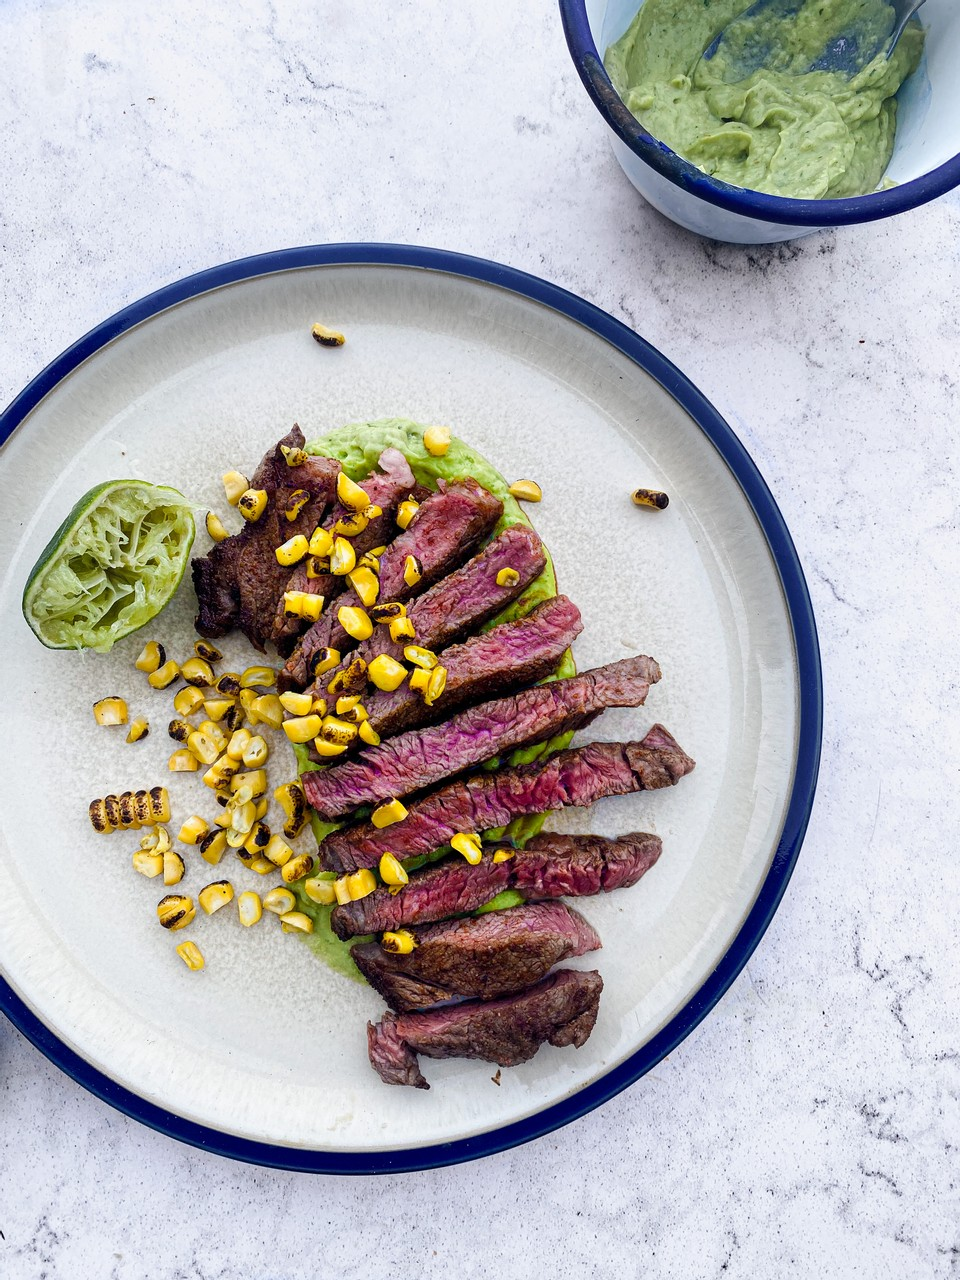 Spiced Rubbed Steak With Corn & Avocado